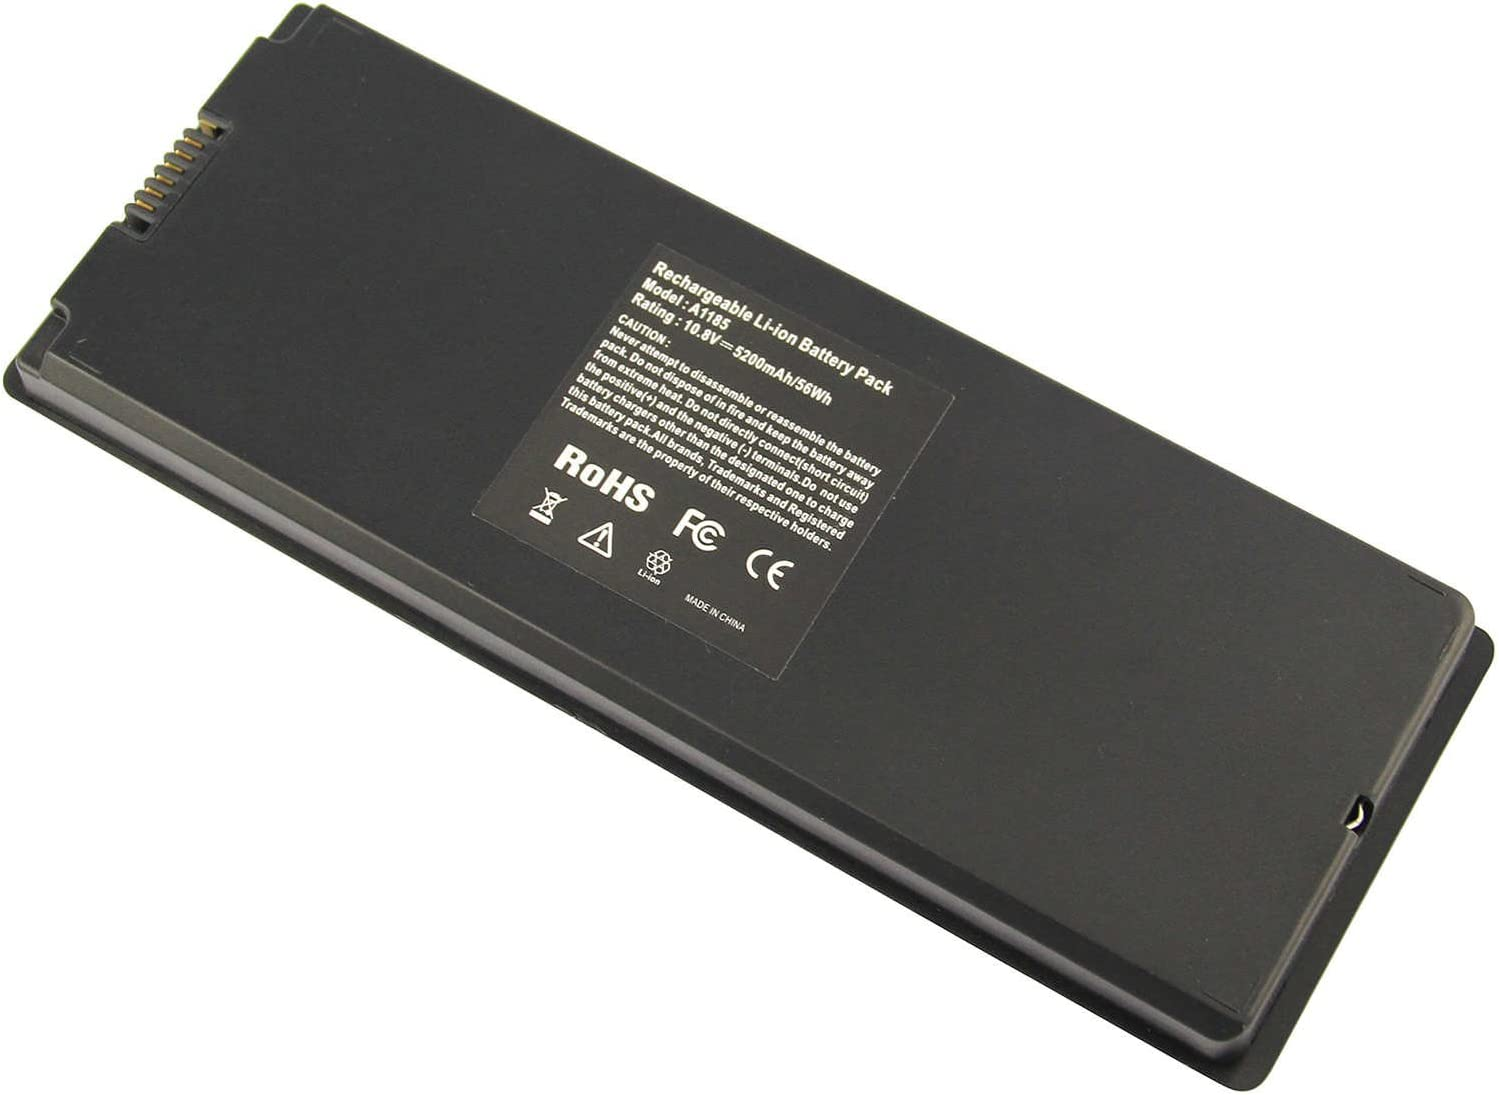 "ARyee for Apple MacBook A1185 A1181 Battery [Only for 2006 2007 2008 2009] Fit MacBook 13"" MA254, MA255, MA472,MA699 MA700, MA701, MB061, MB062, MB063, MB062, MB063,MB402, MB403[10.8V 59Wh]"